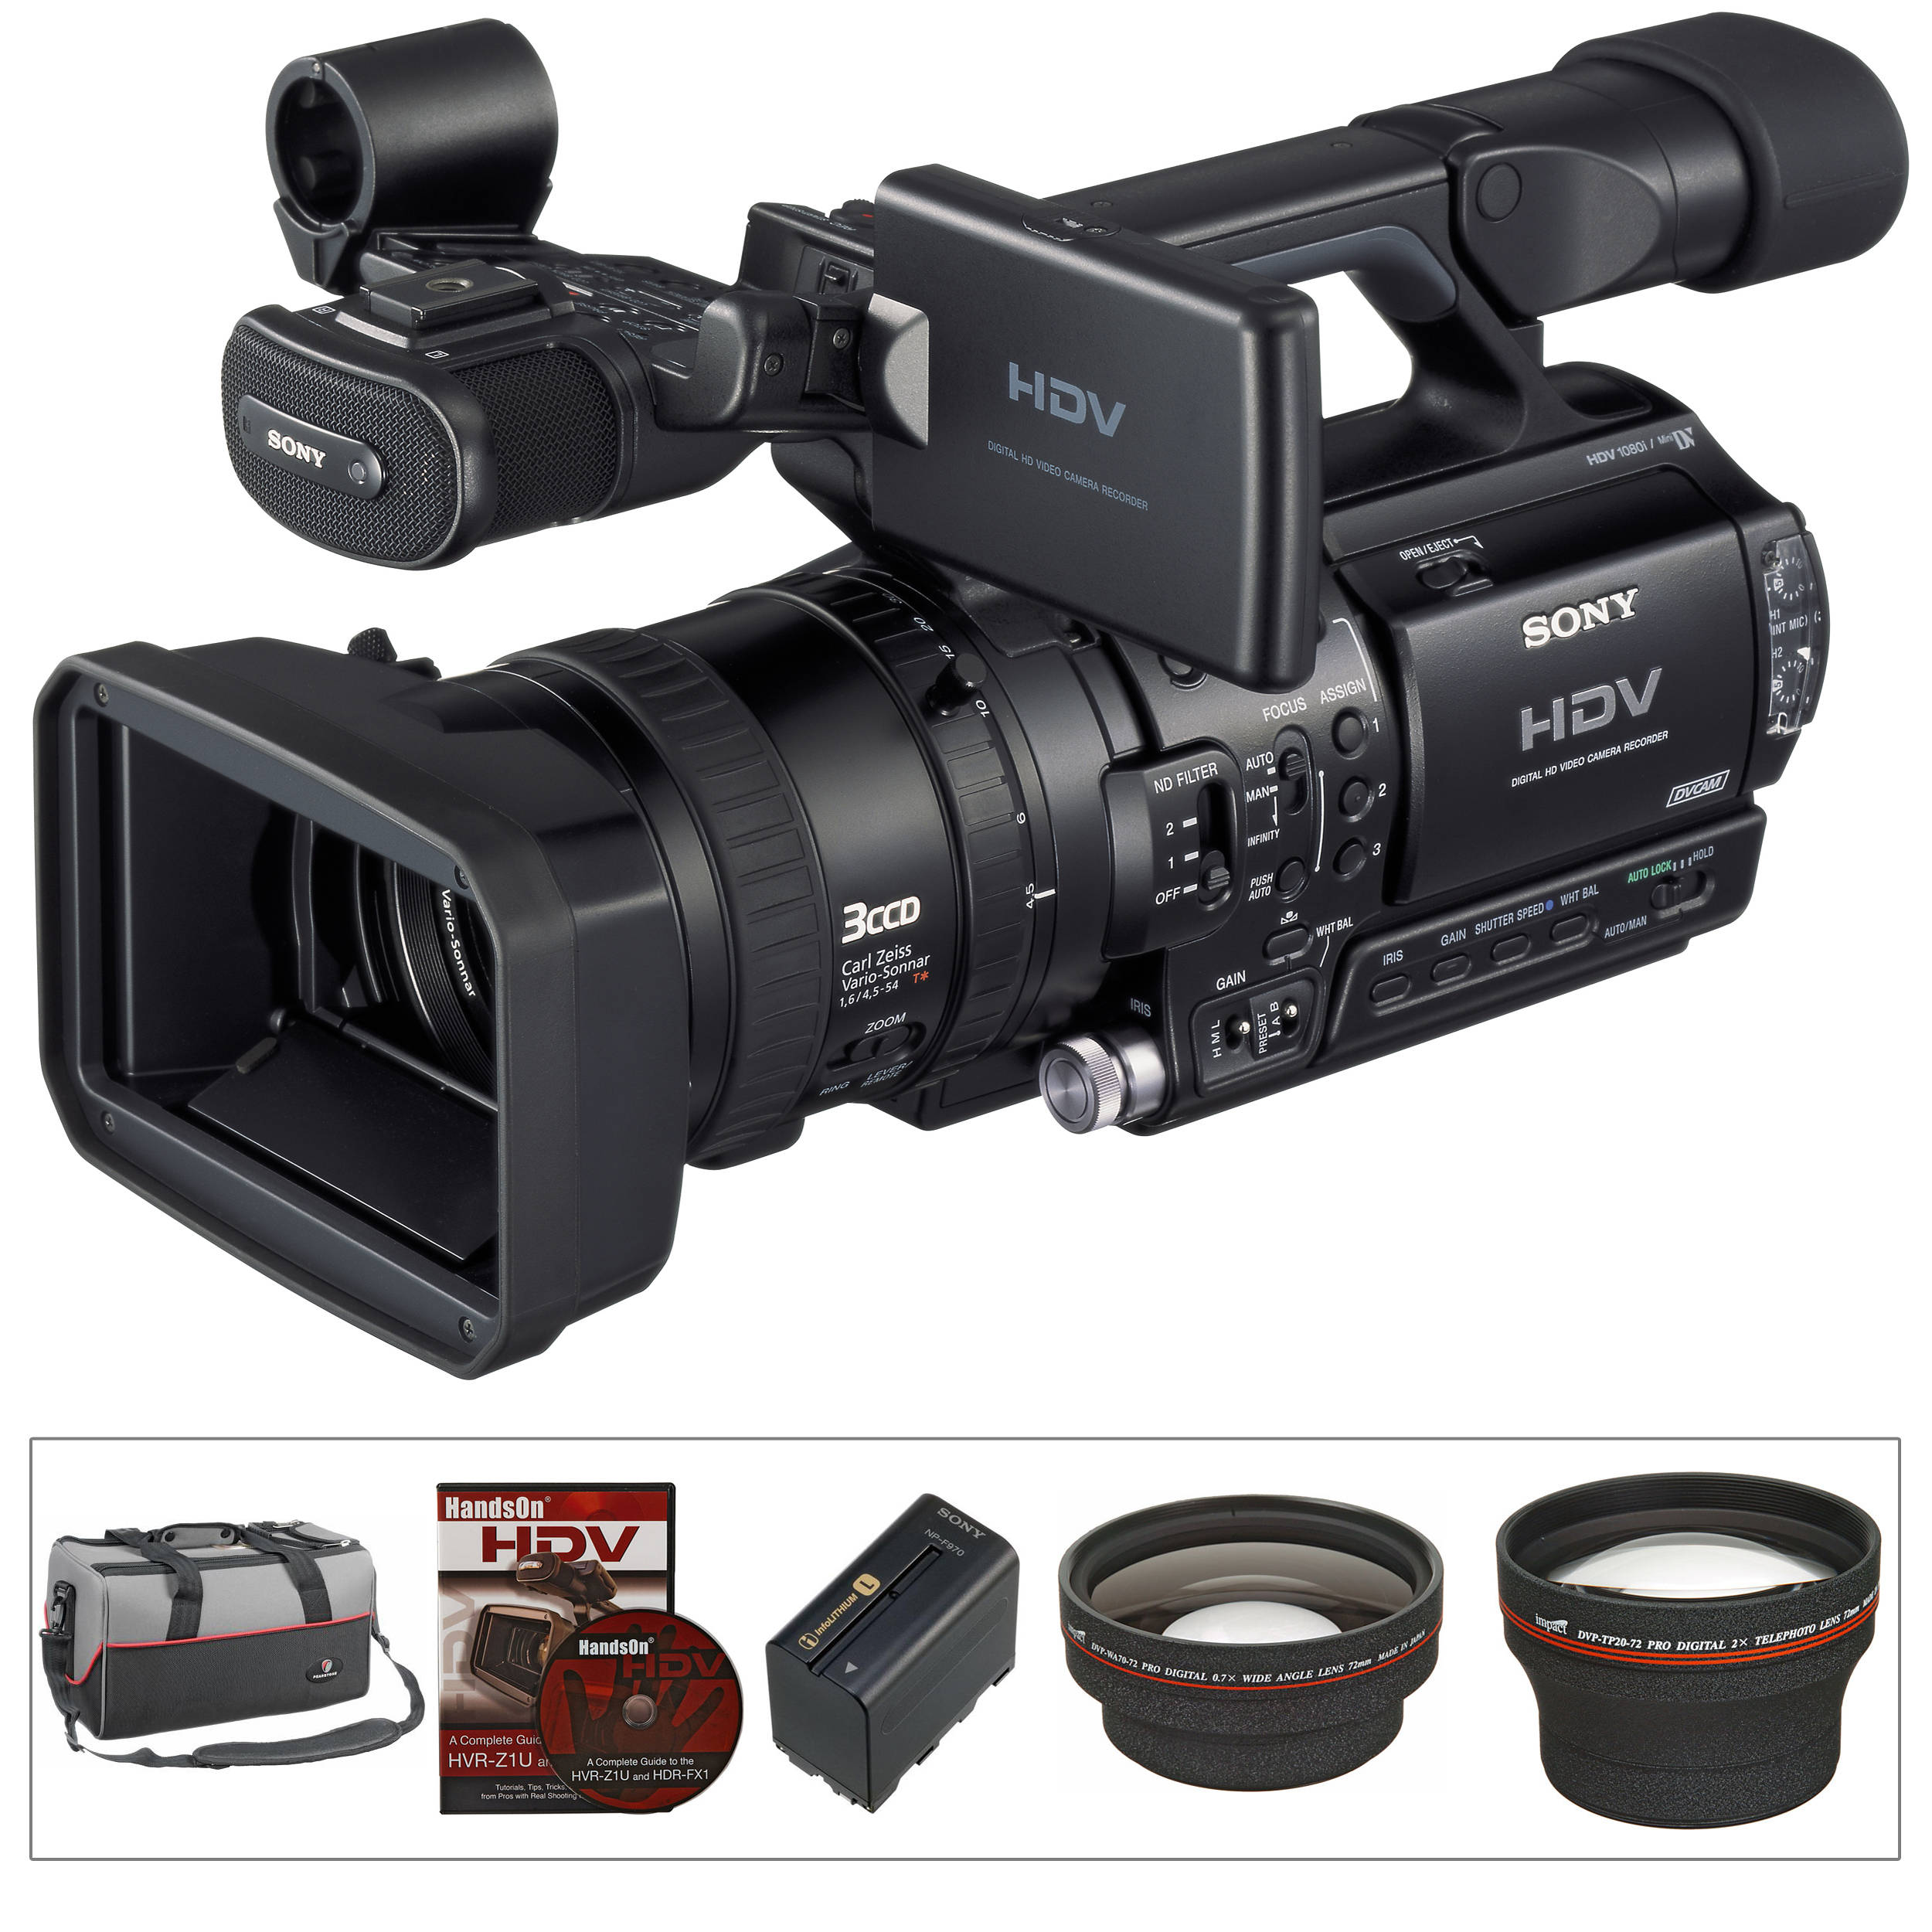 sony hvr z1u 1 3 3ccd hdv camcorder kit b h photo video rh bhphotovideo com sony hvr z1 manual pdf sony hvr-z1 service manual pdf